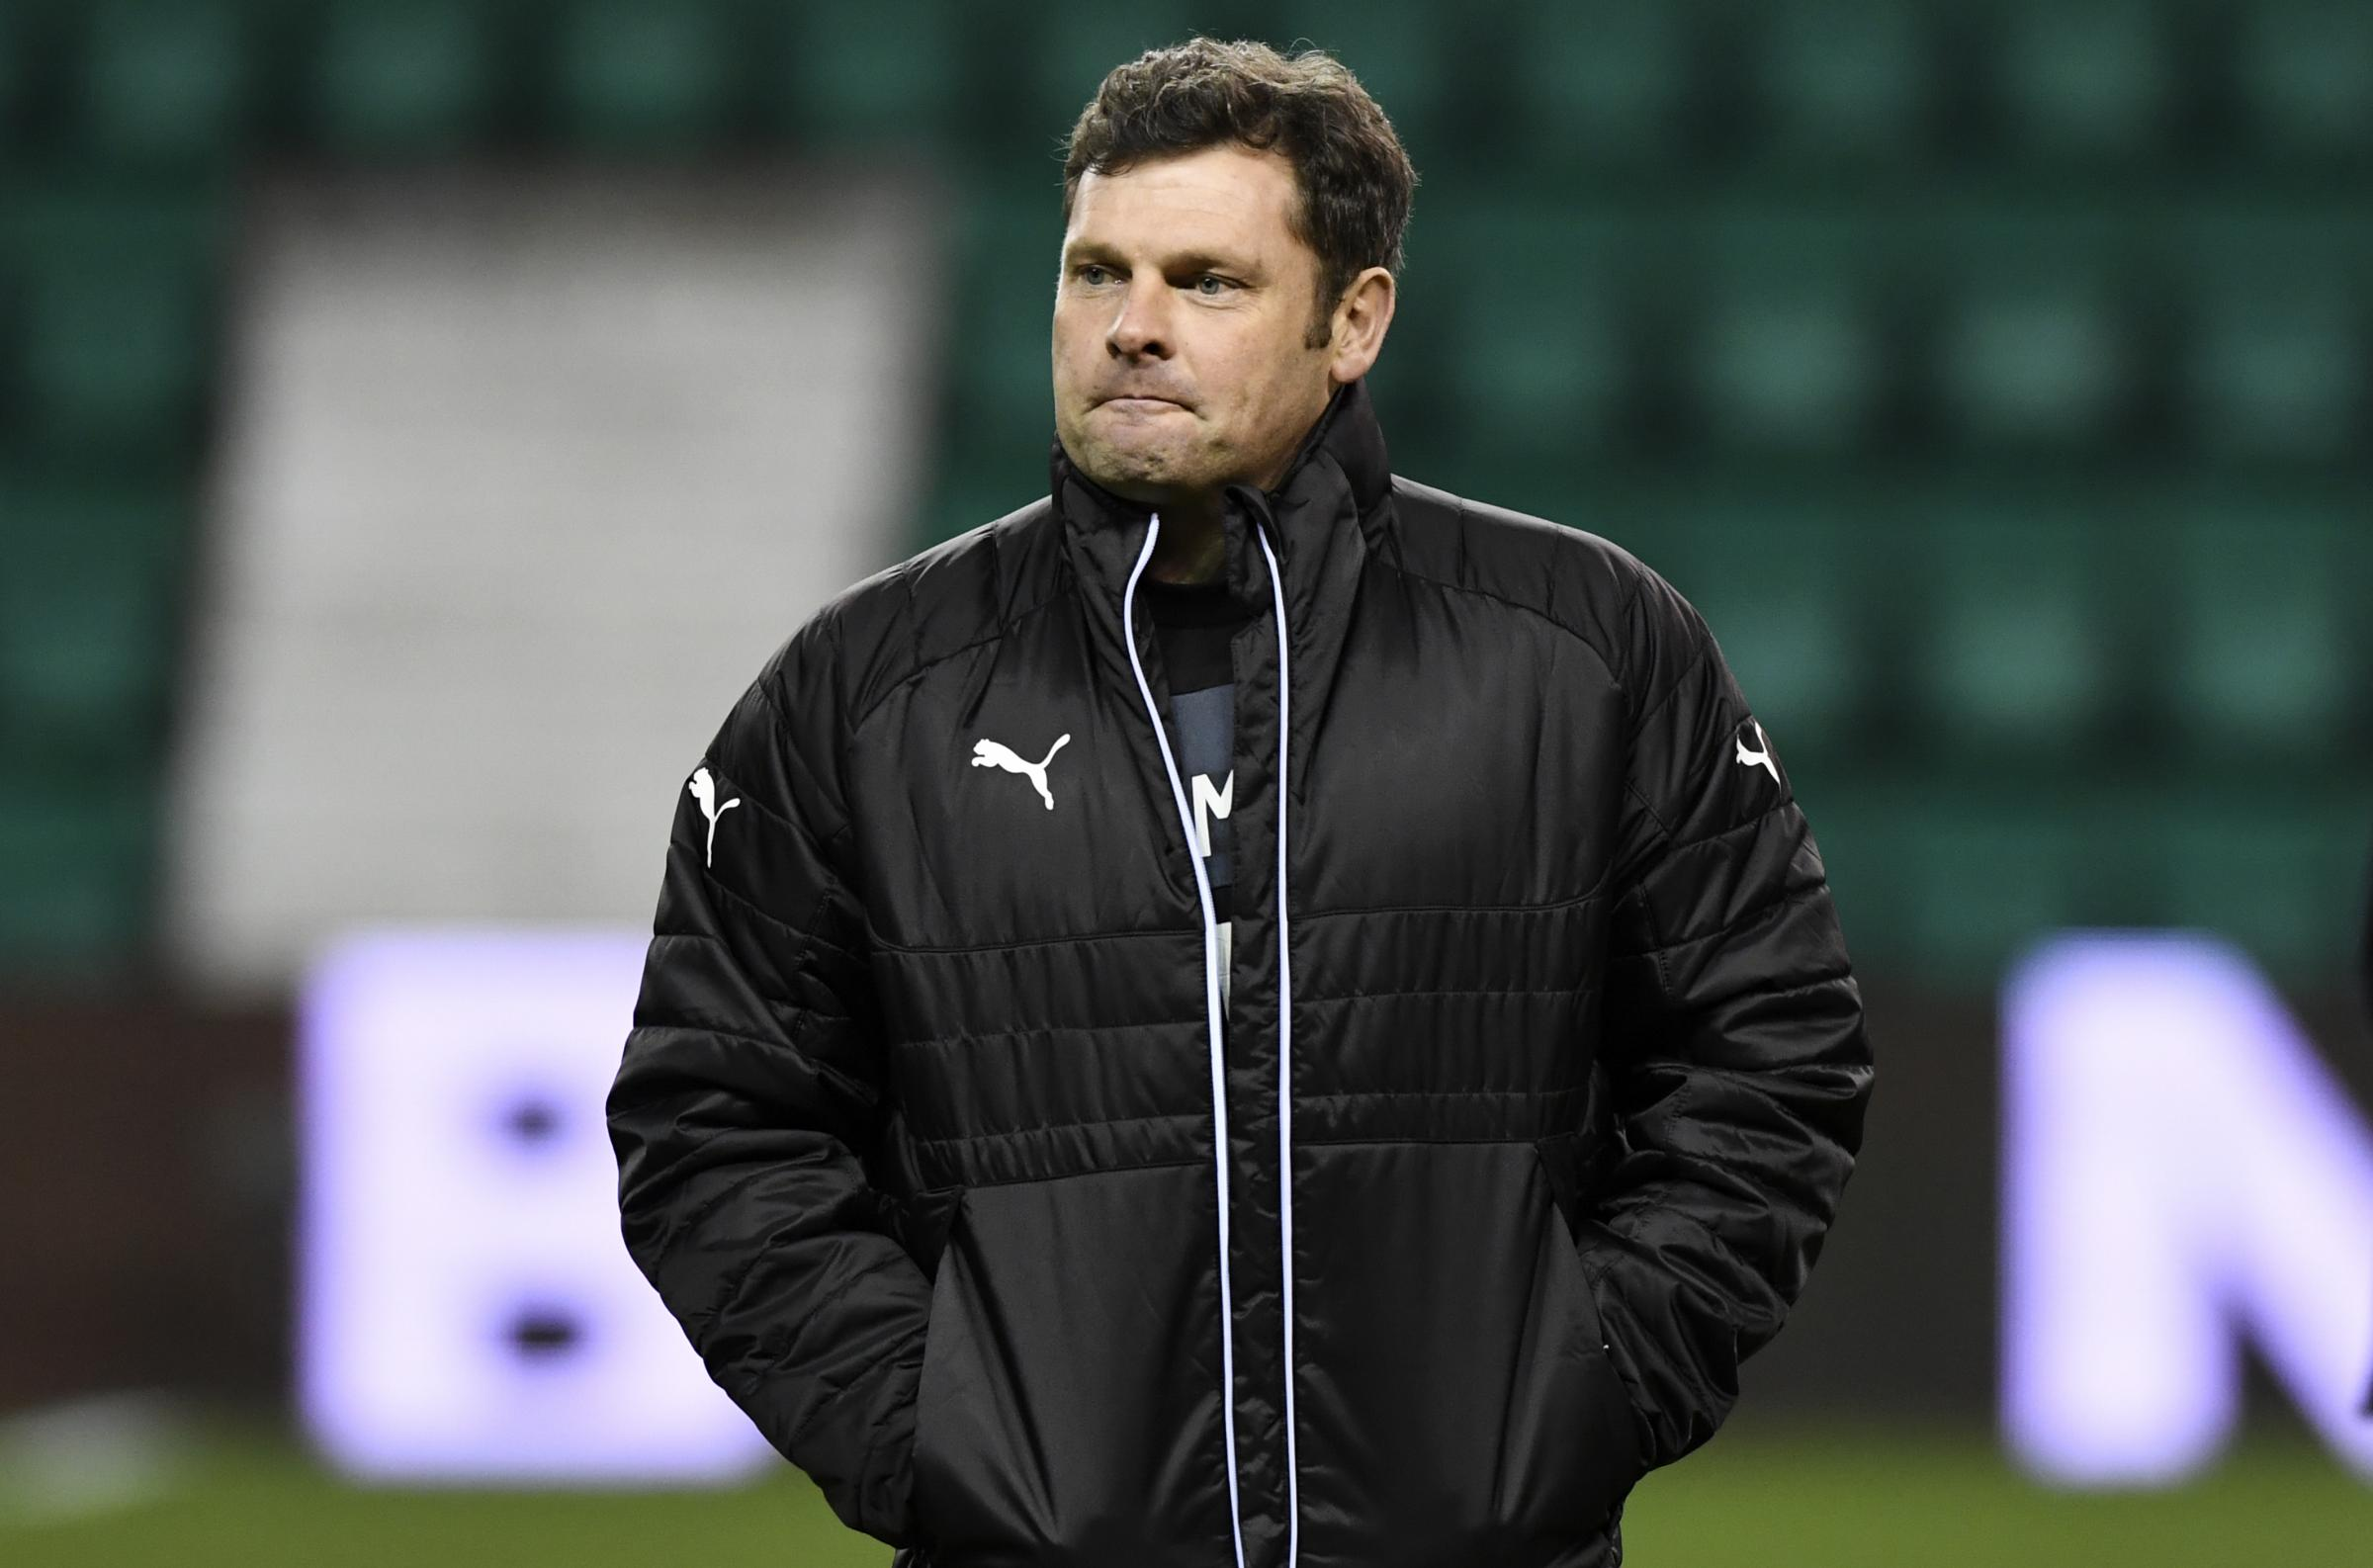 Interim Rangers manager Graeme Murty has done better than even he would have believed